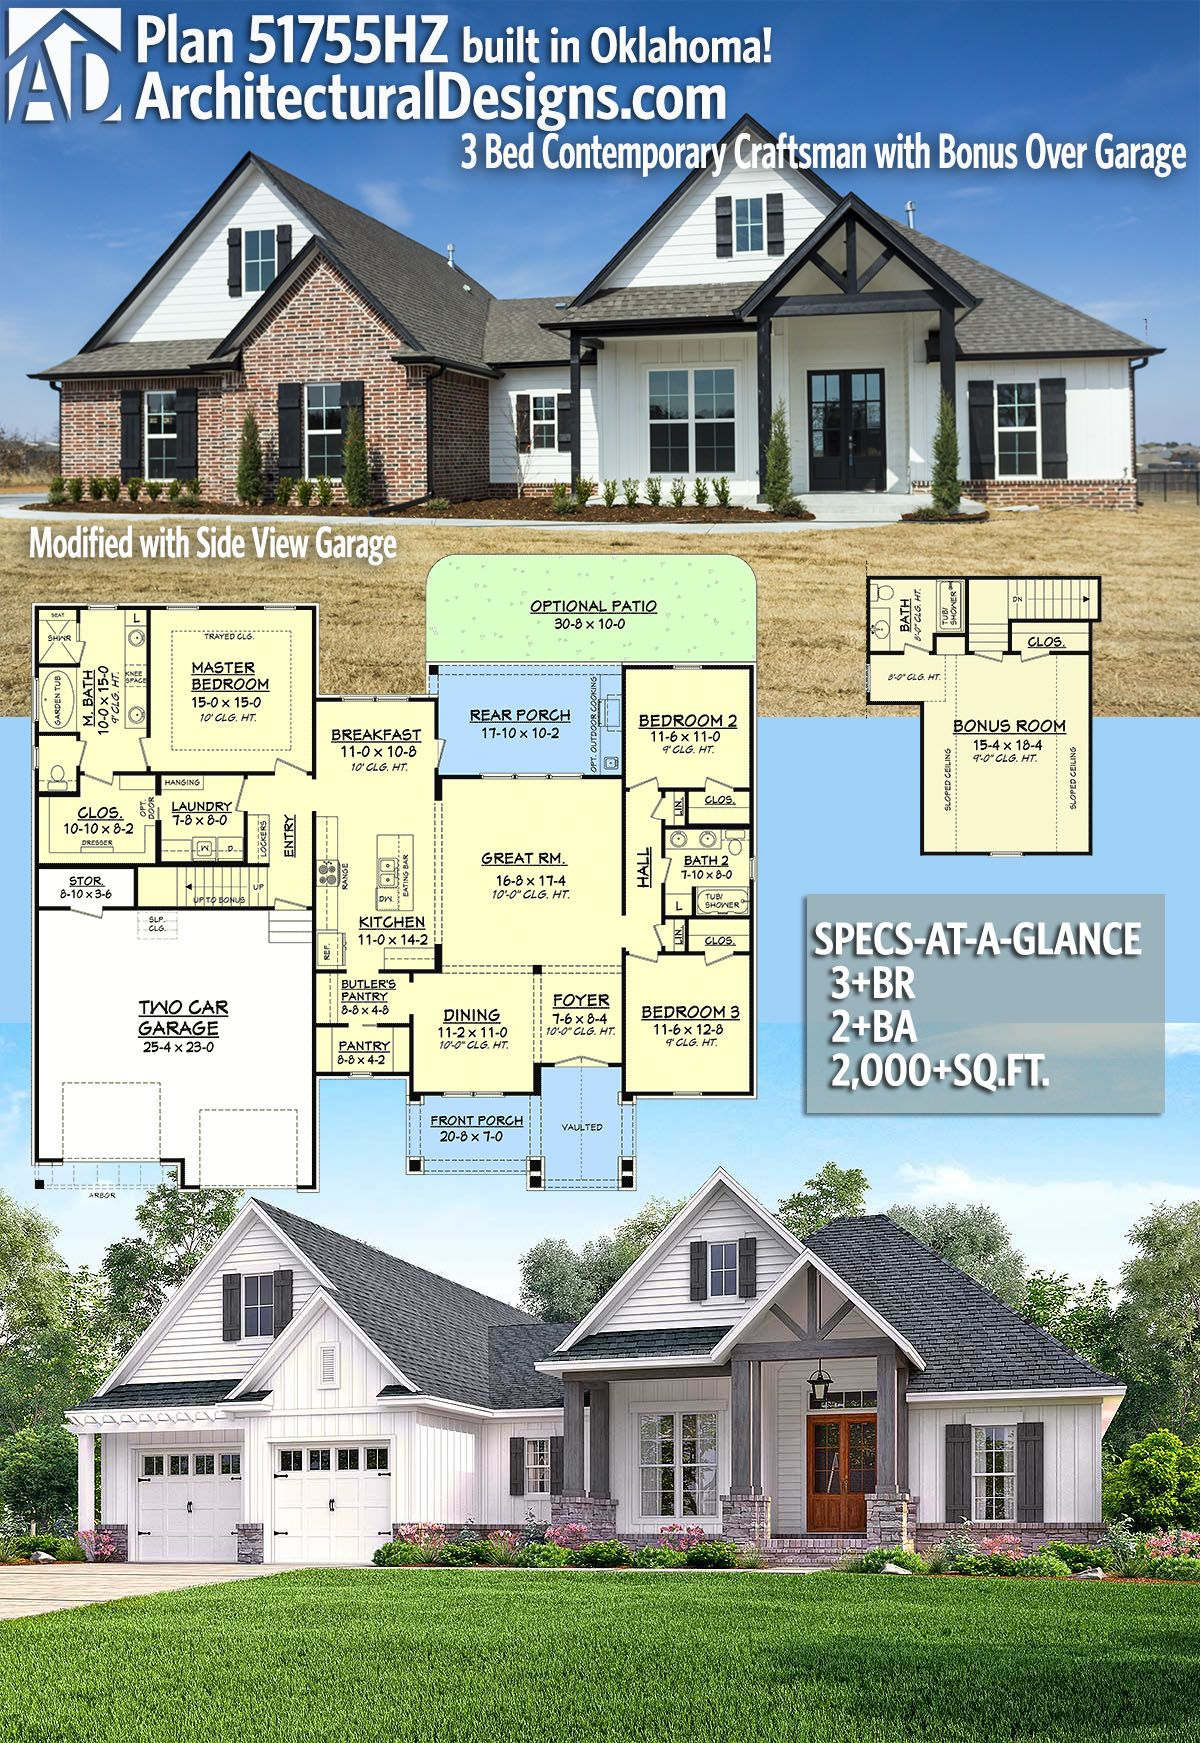 Oklahoma New Construction House Plans on roof house plans, multi-unit house plans, condo house plans, electrical house plans, exterior house plans, foundation house plans, industrial house plans, commercial house plans, pole building house plans, design house plans, addition house plans, retirement house plans, 40x50 metal building house plans, plumbing house plans, 2 unit house plans, bathrooms house plans, residential house plans, stick frame house plans, energy star house plans, builder house plans,